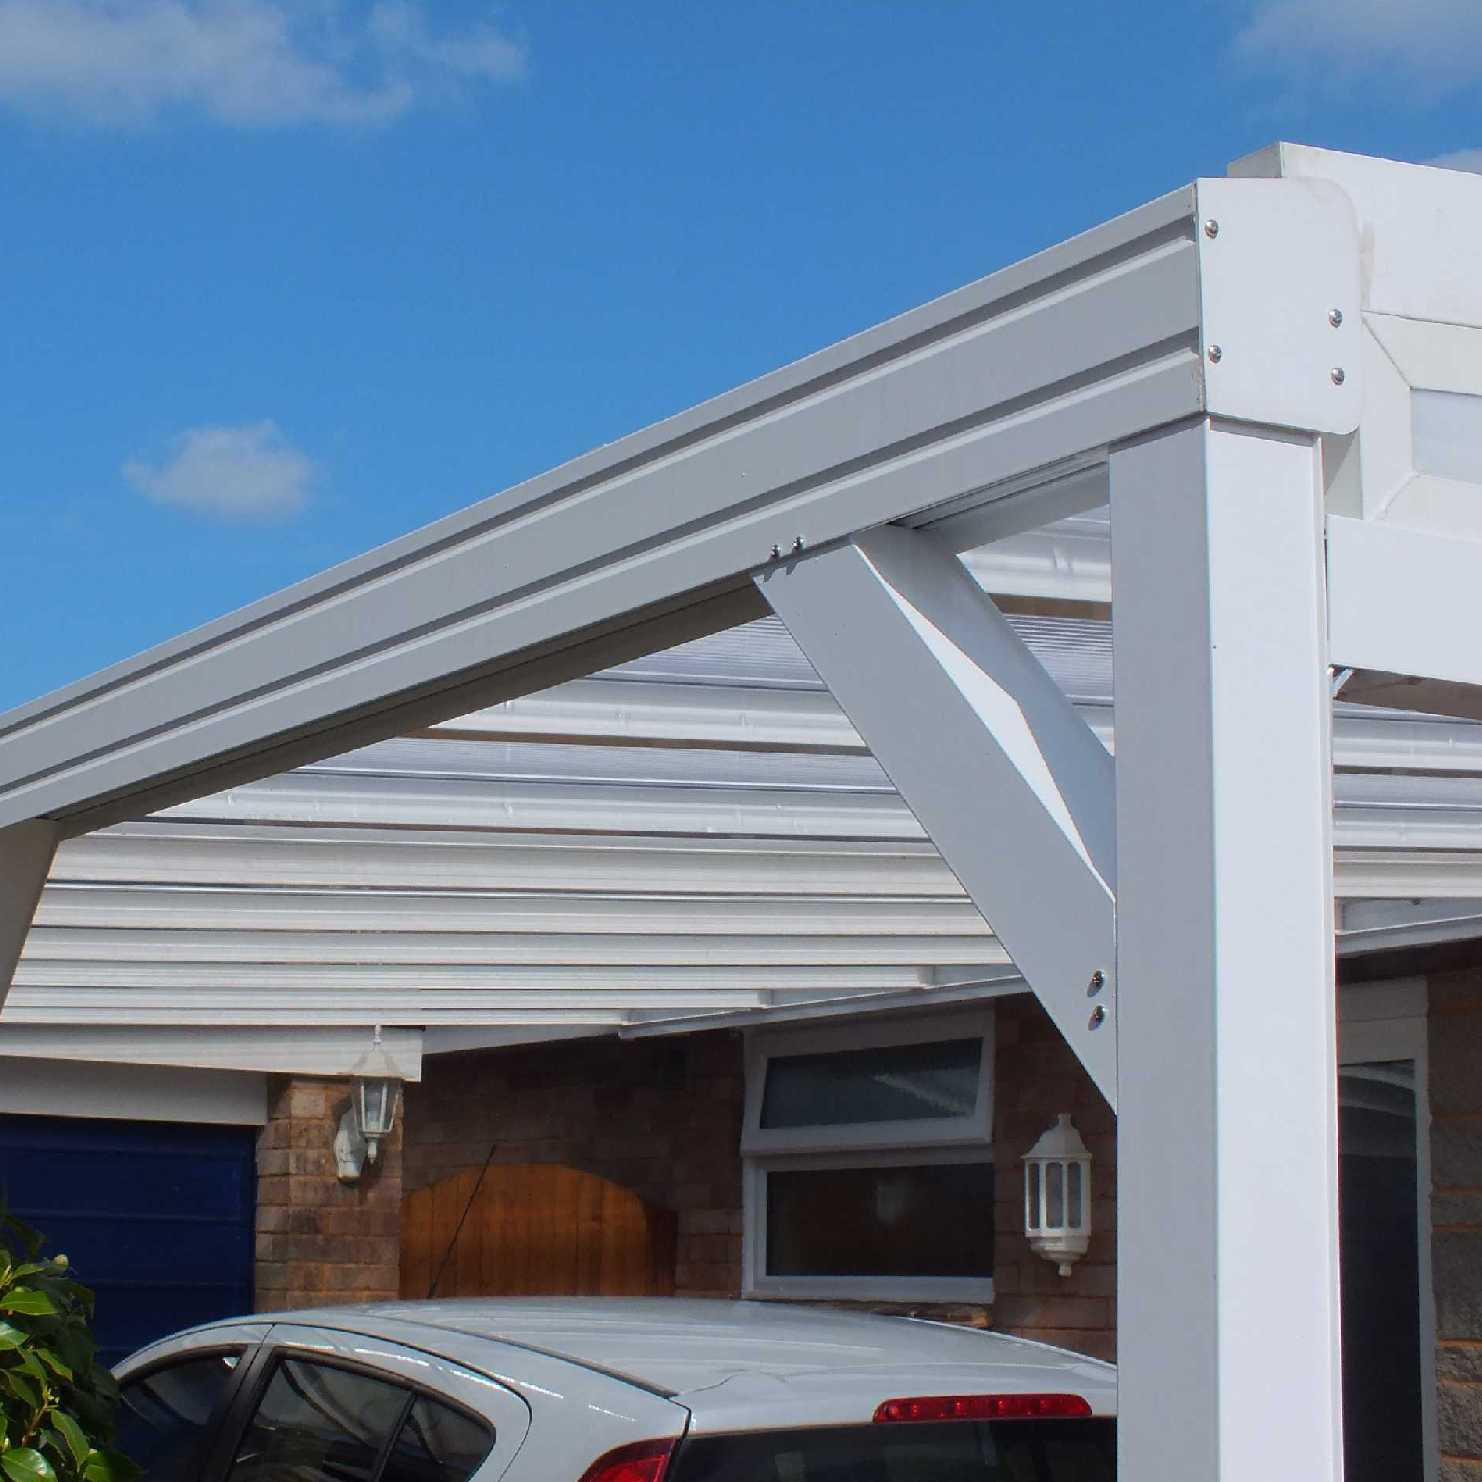 Buy Omega Smart White Lean-To Canopy with 16mm Polycarbonate Glazing - 3.1m (W) x 3.0m (P), (2) Supporting Posts online today